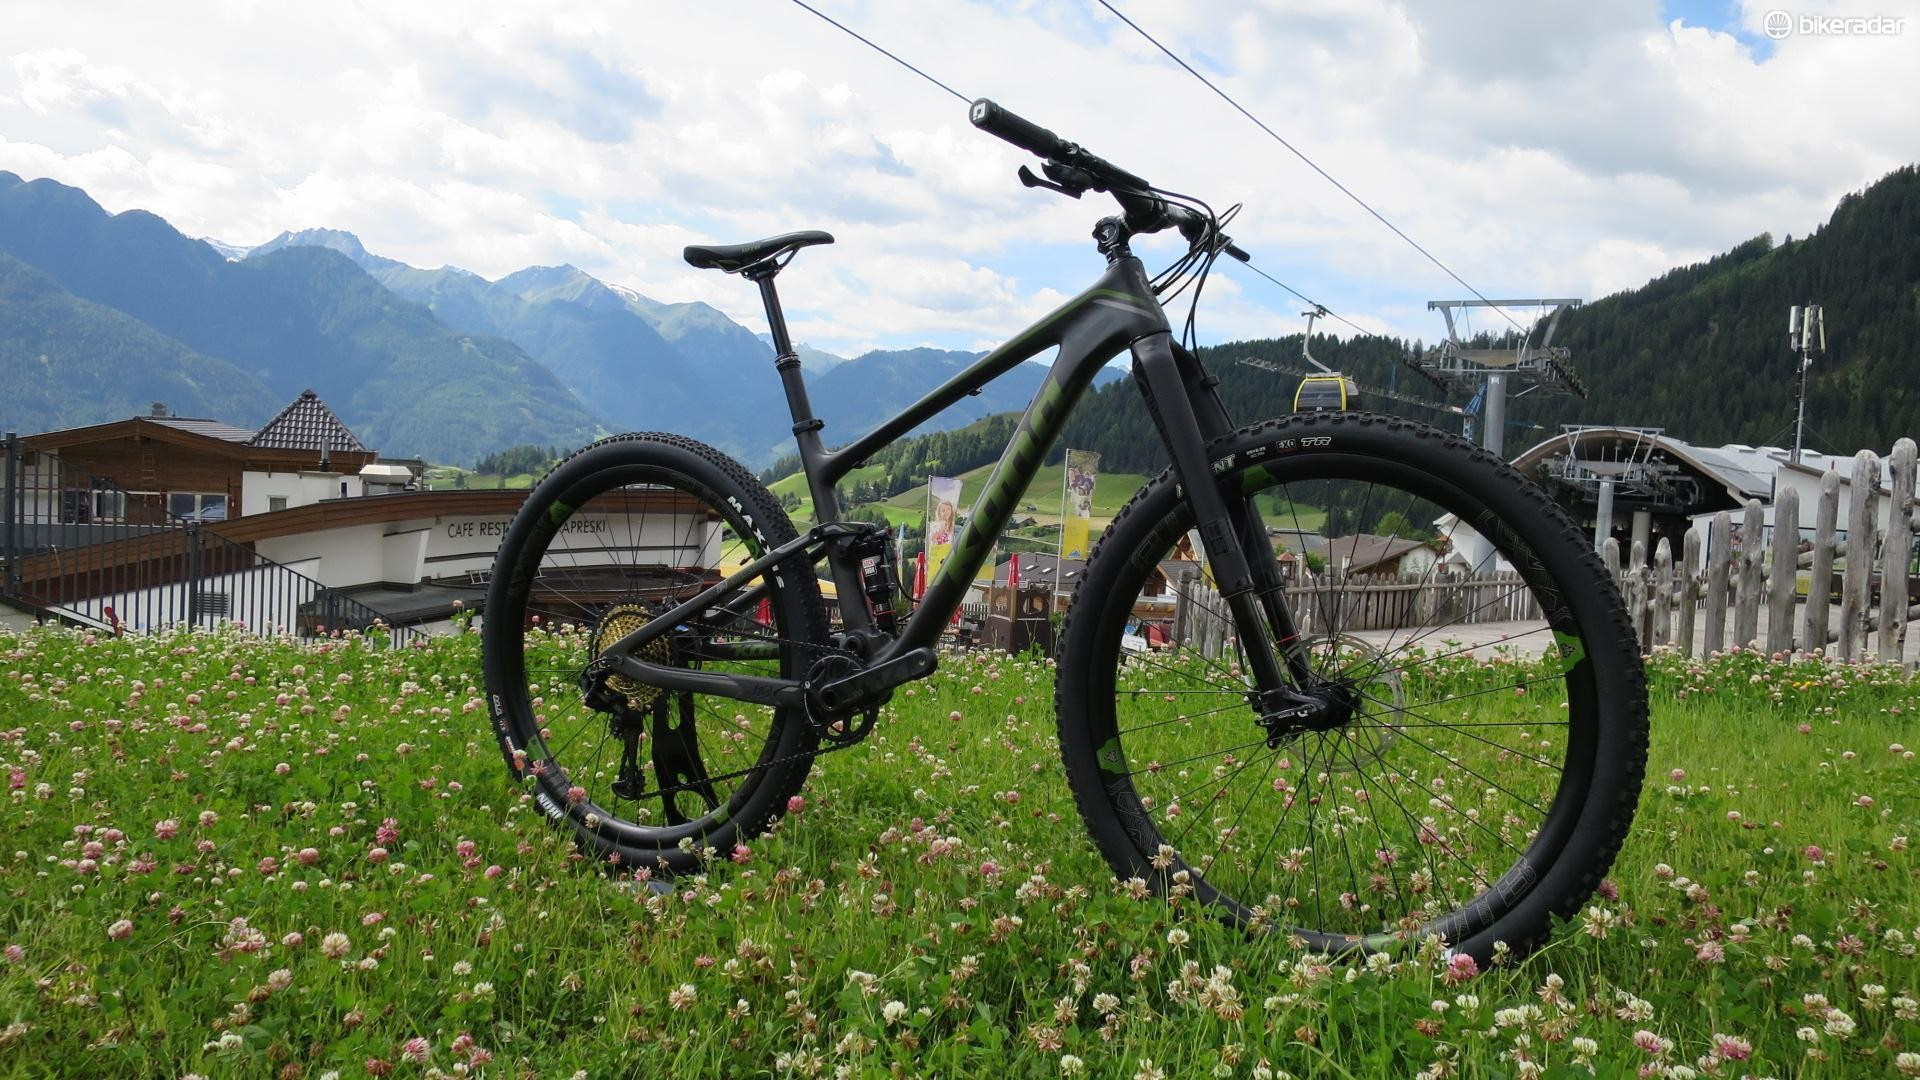 The HeiHei Supreme takes a 100mm chassis and plugs a 120mm fork up front